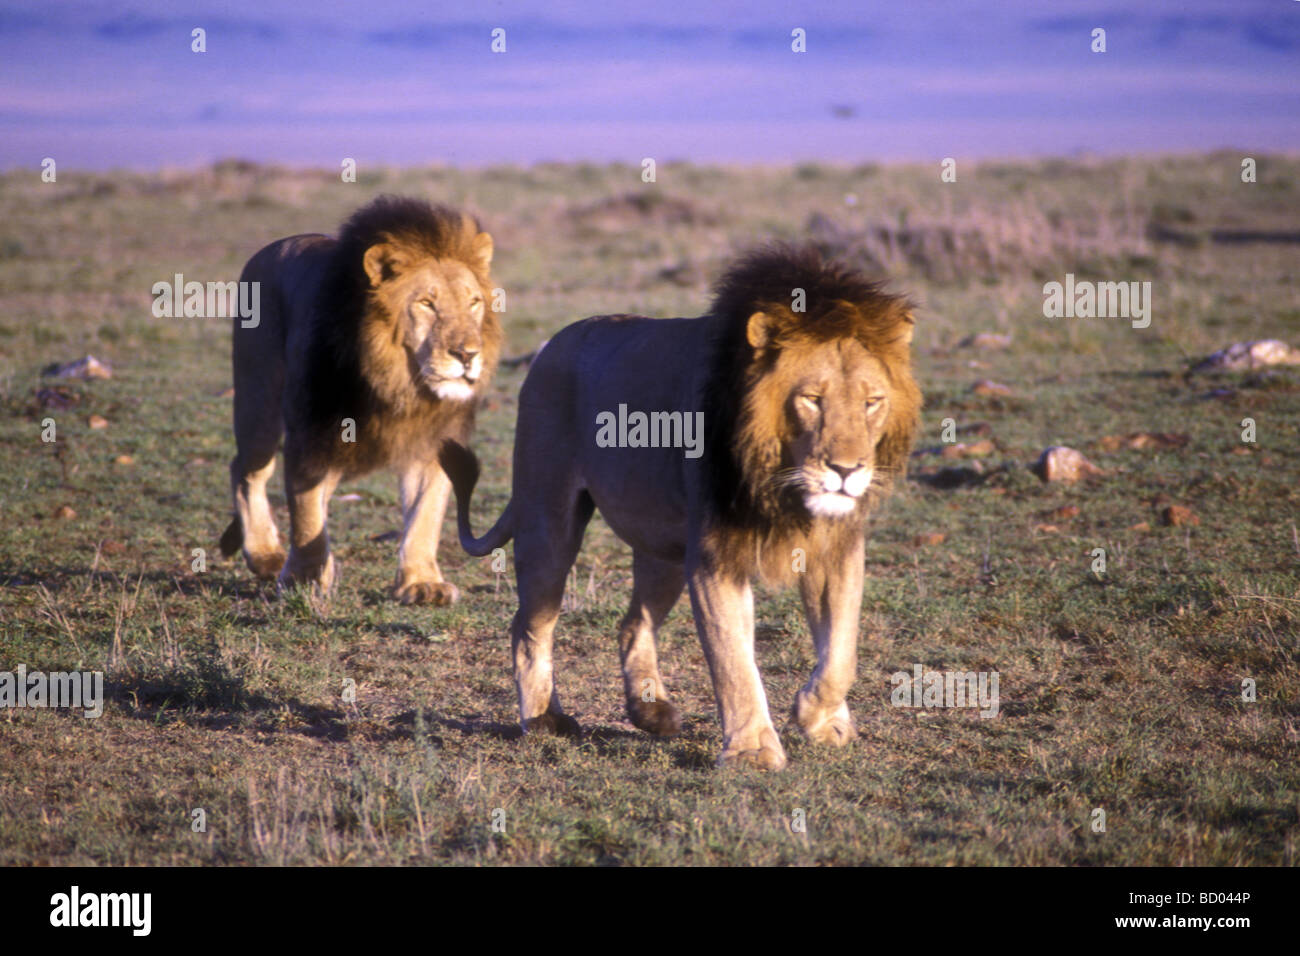 Lions walking together - photo#4